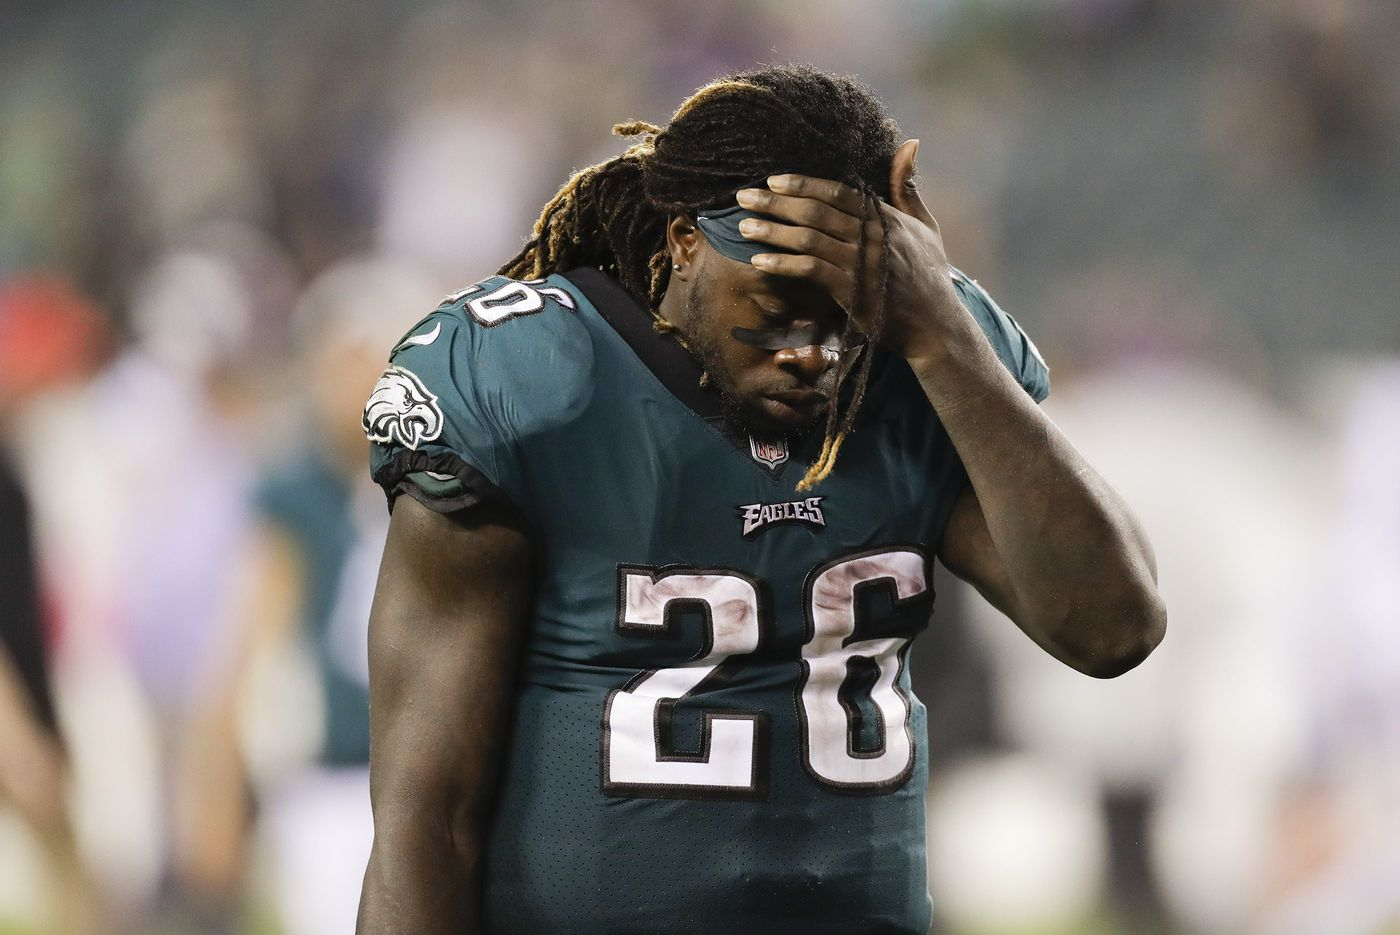 Jay Ajayi Out For Season With Torn ACL